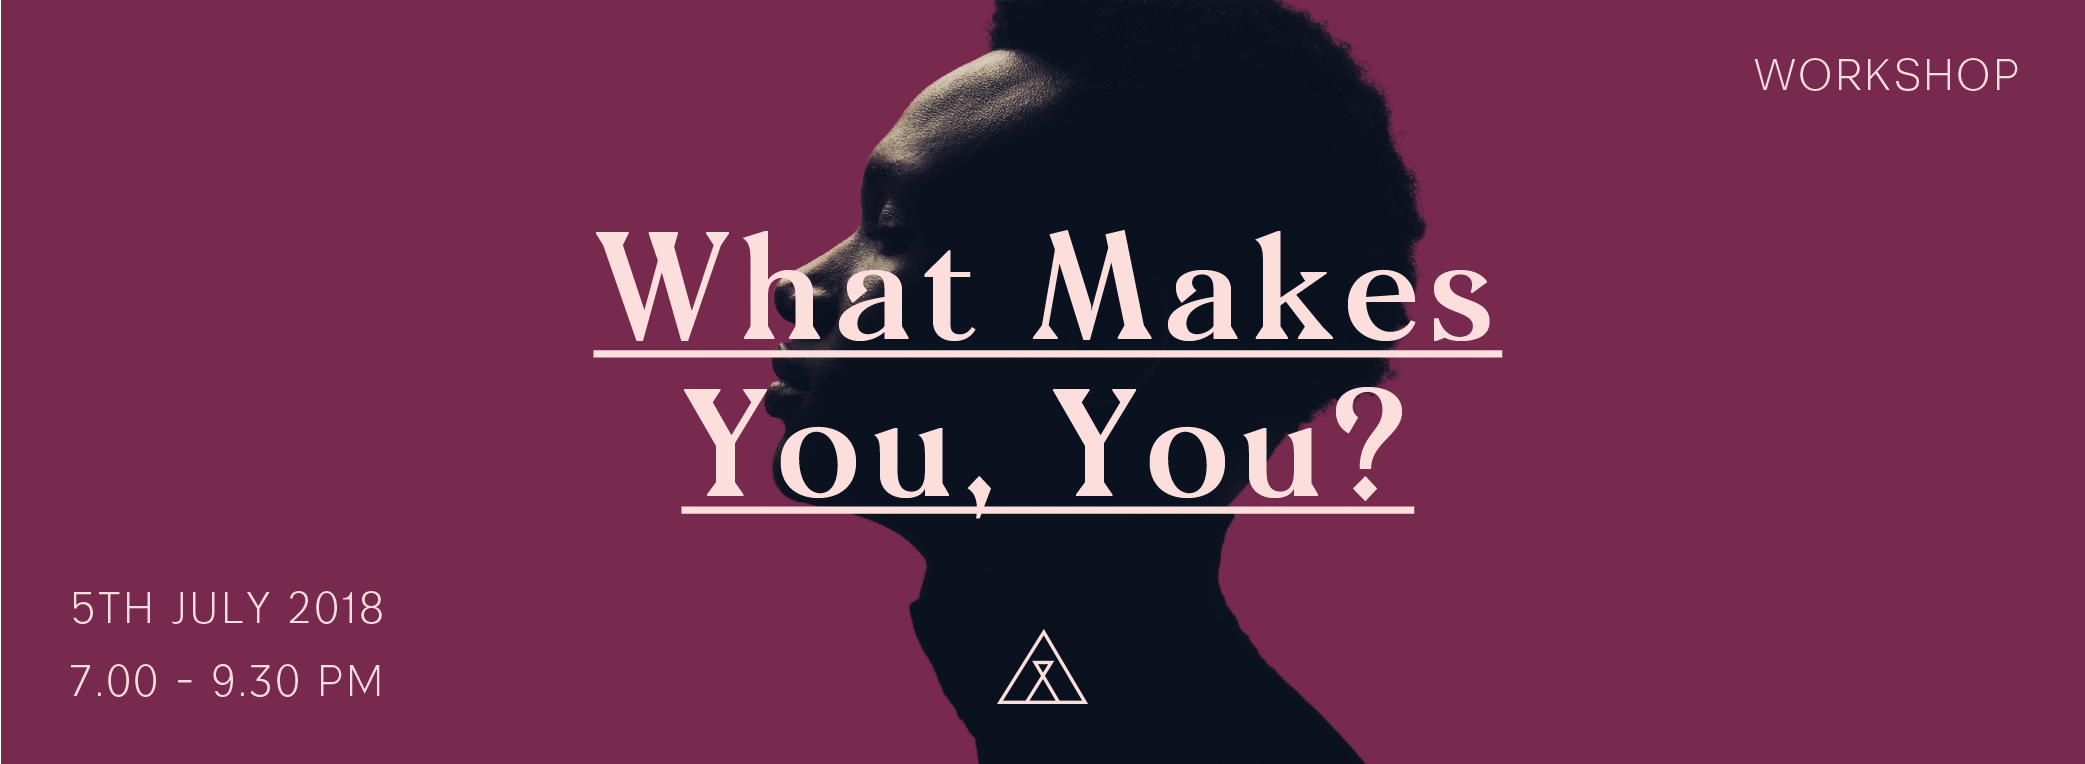 Whats Makes You, You?_Web Header4